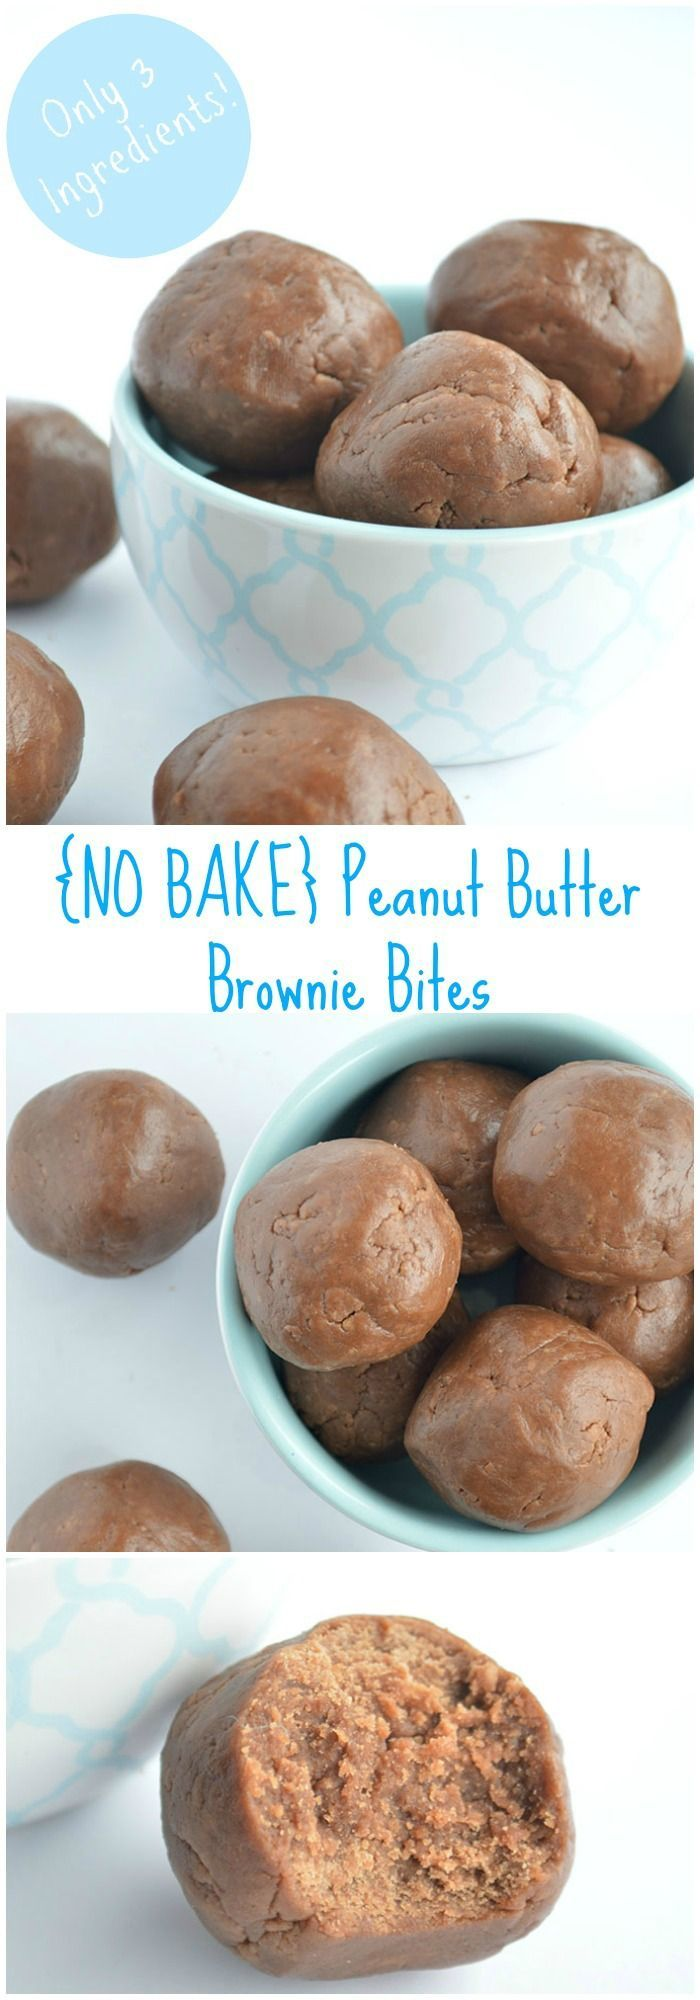 No Bake Peanut Butter Brownie Bites. Perfect combo of PB and chocolate! Only 3 ingredients, and ready in 5 minutes!